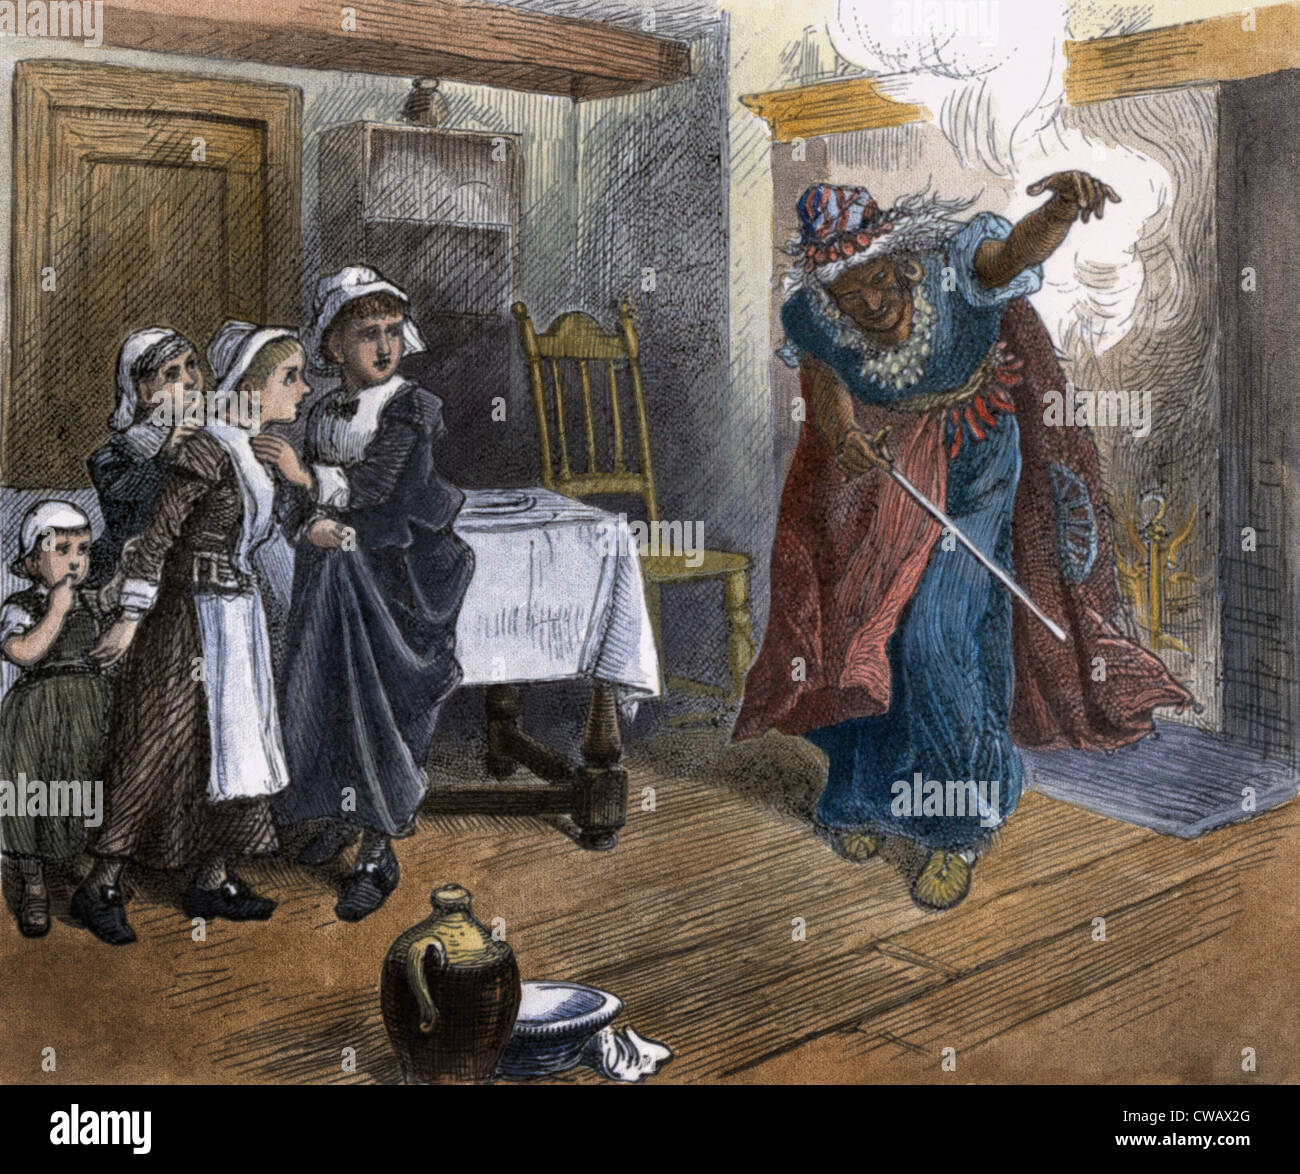 History of the Salem Witch Trials